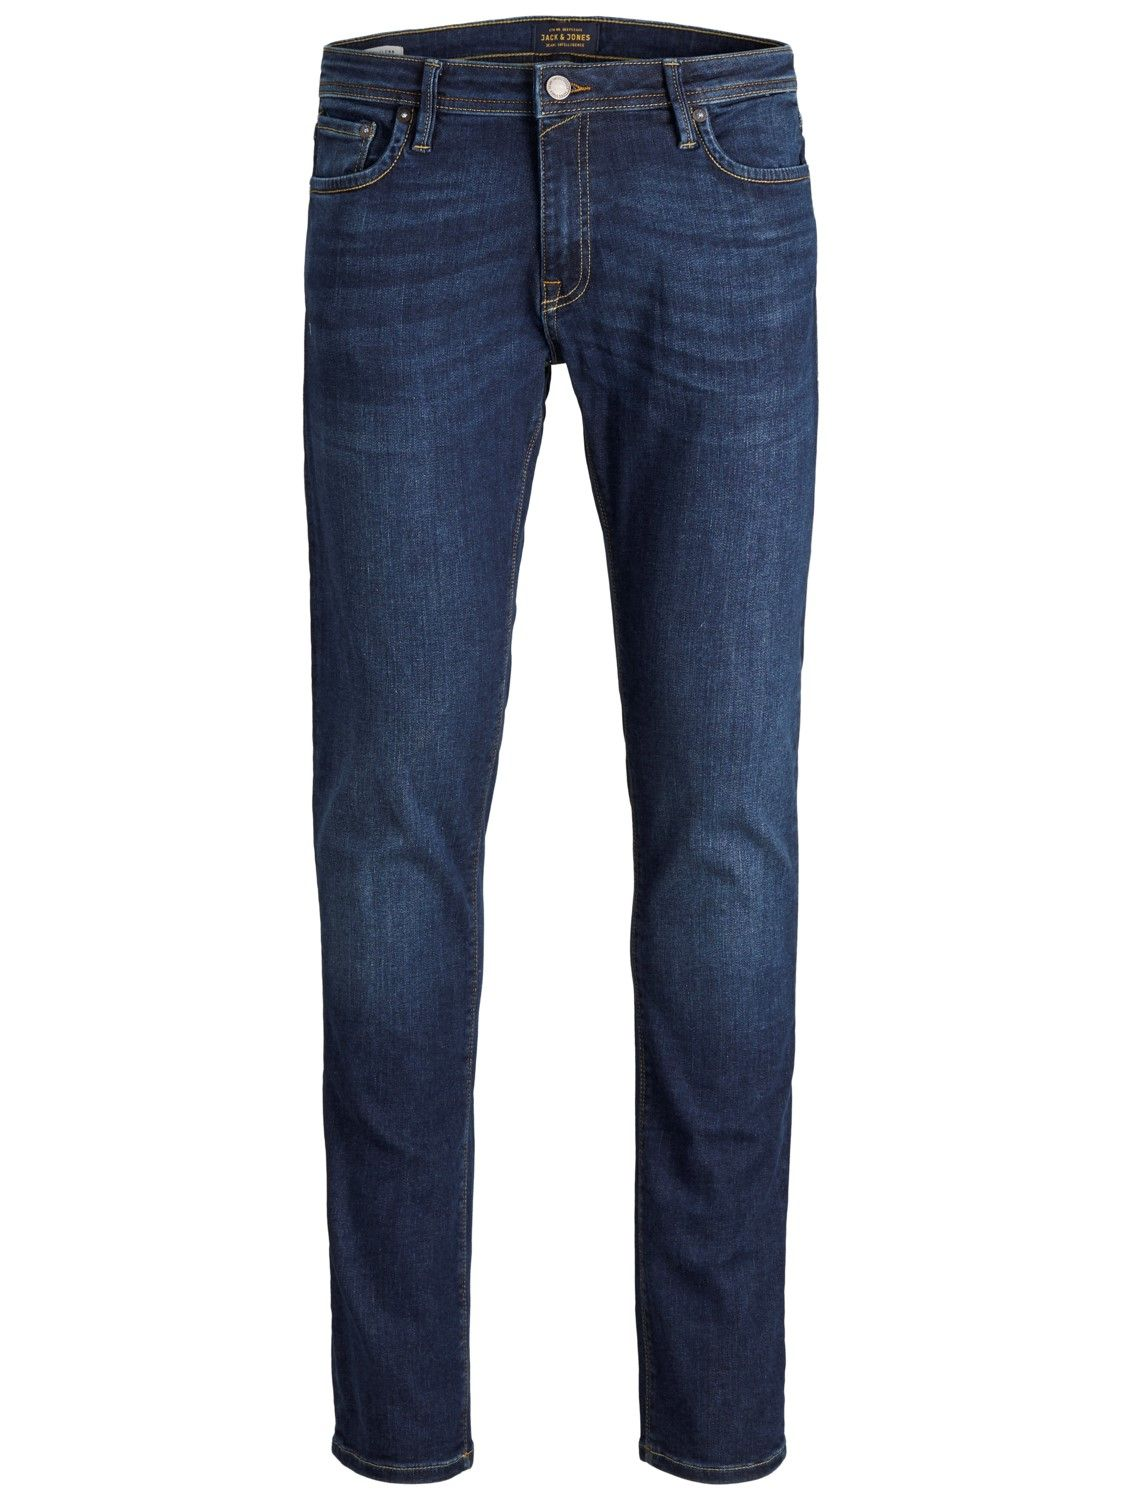 Jack & Jones - Herren Jeans, Slim Fit (Art. 12140464) 001